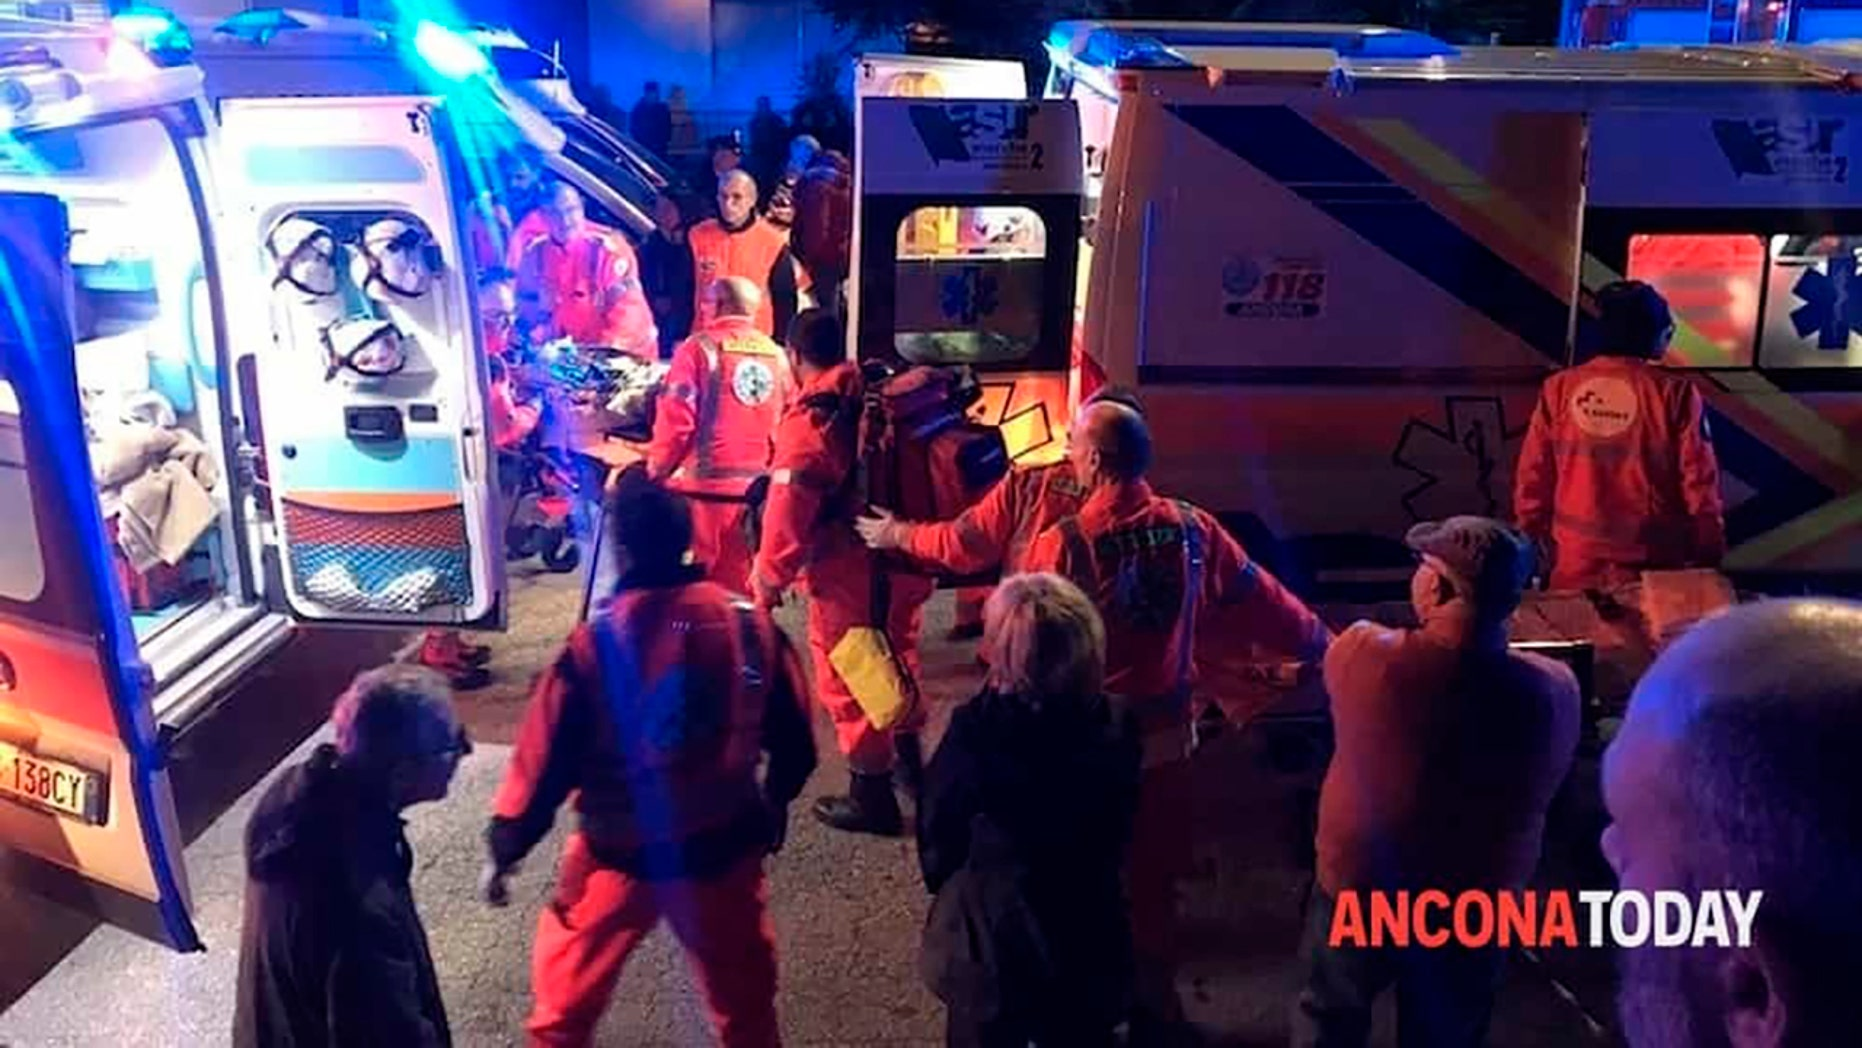 Rescuers assist injured people outside a nightclub in Corinaldo, central Italy, early Saturday, Dec. 8, 2018. (Stefano Pagliarini/Ancona Today via AP)